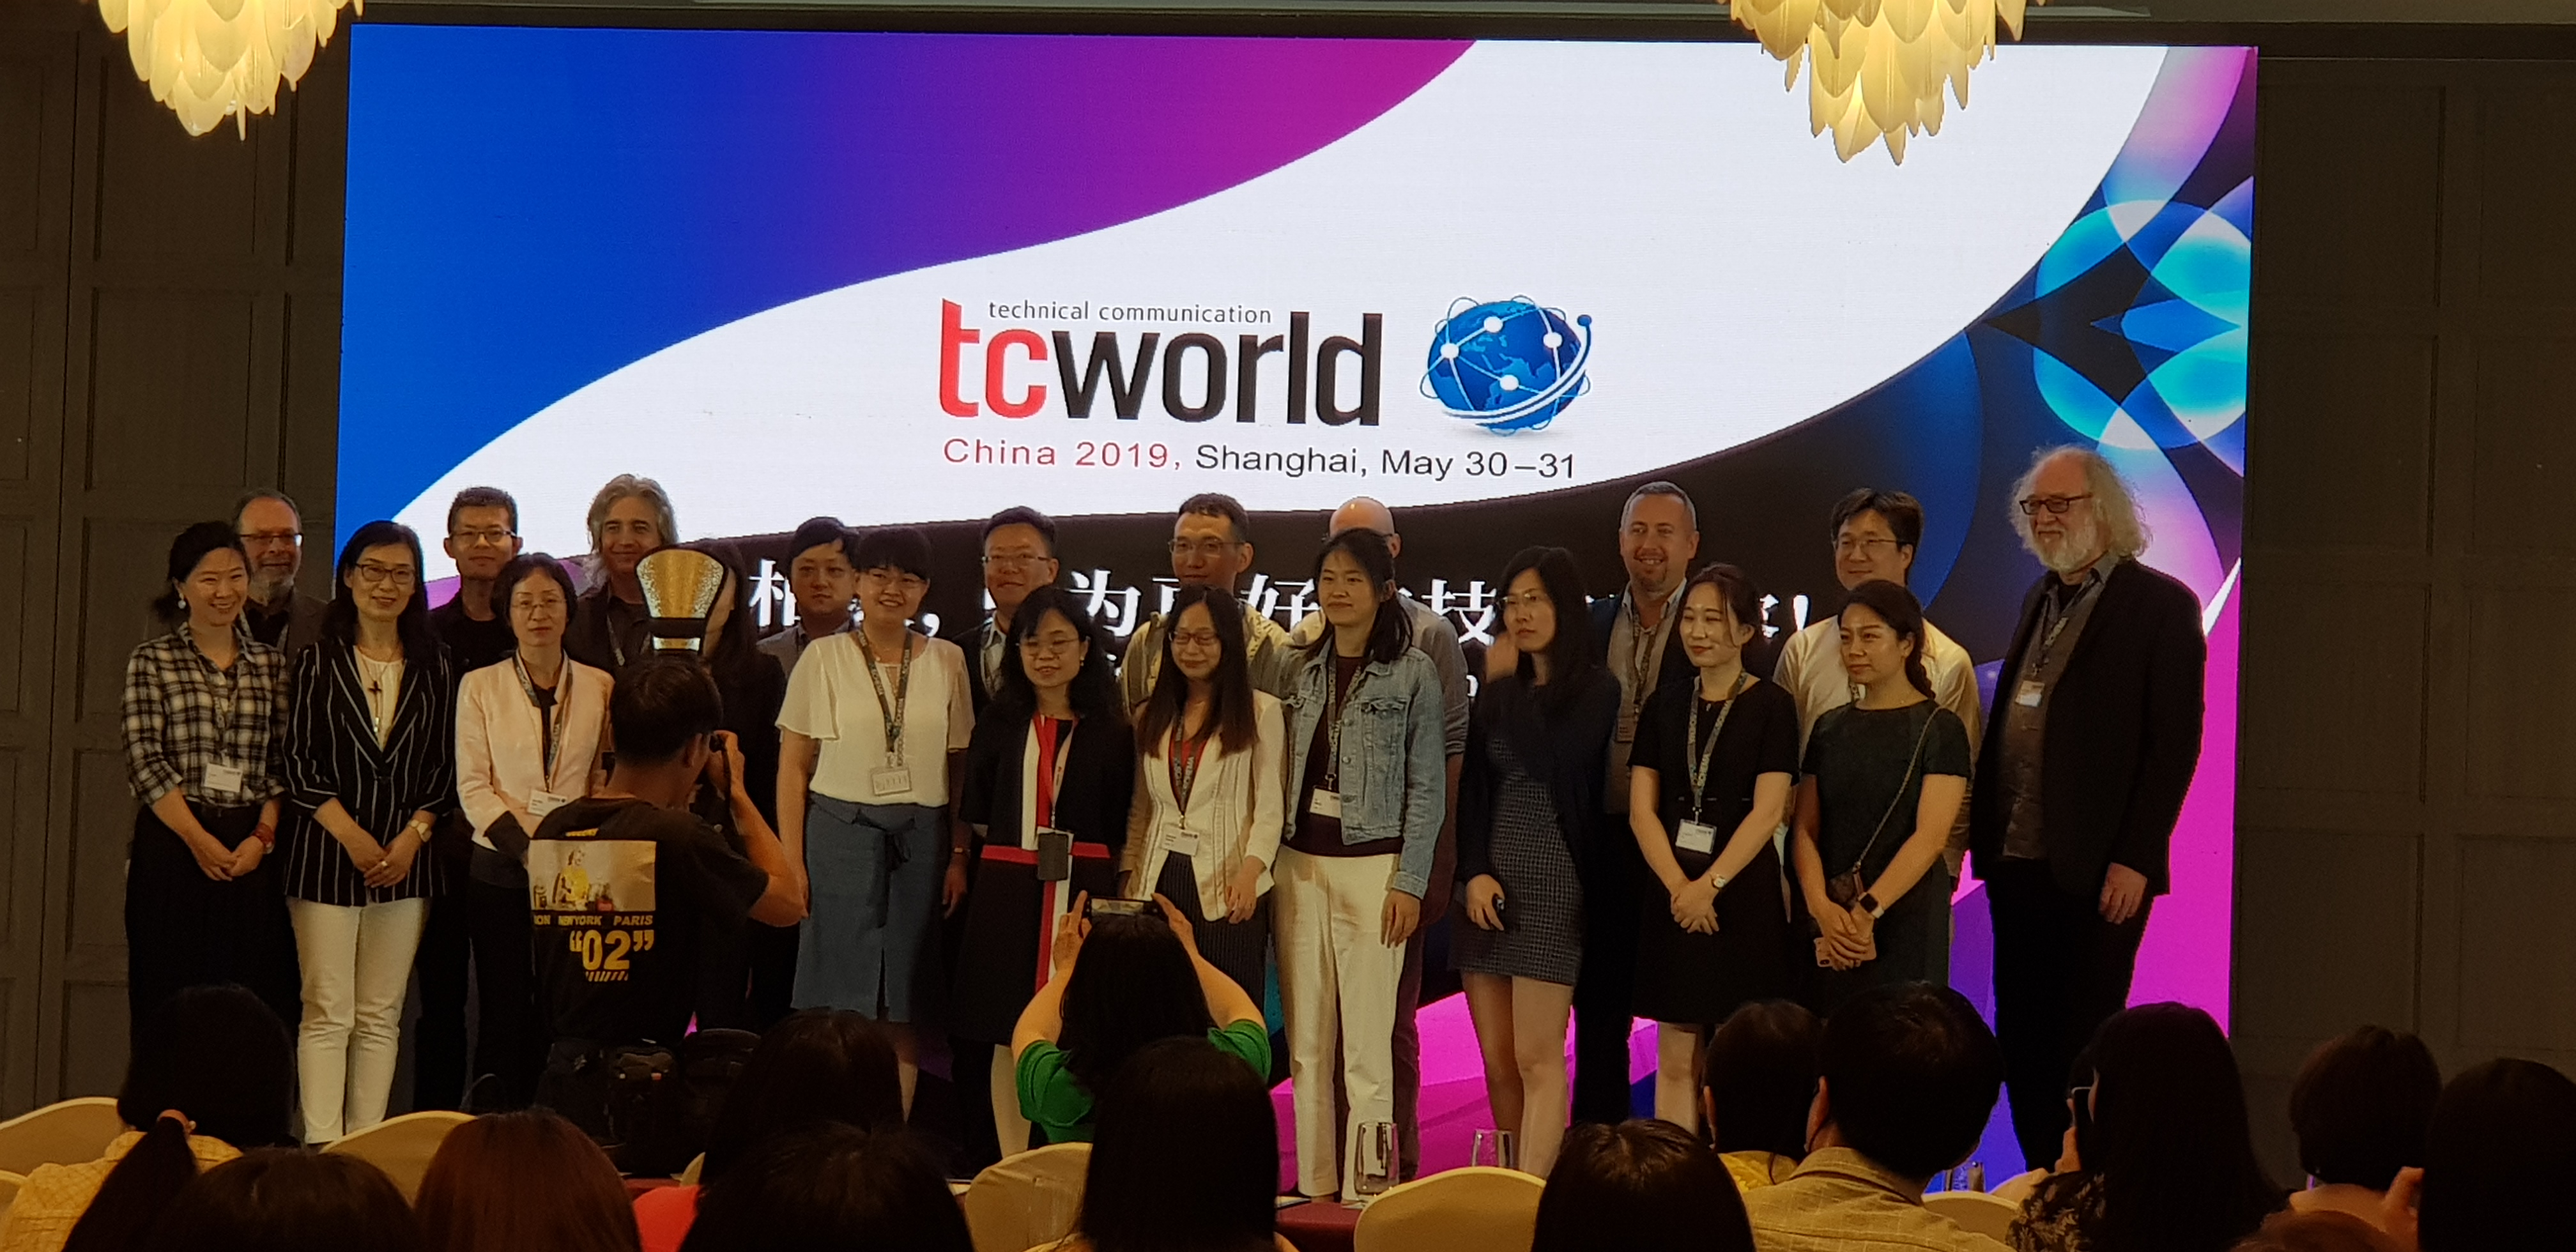 Dr.Localize attended TCWorld China 2019